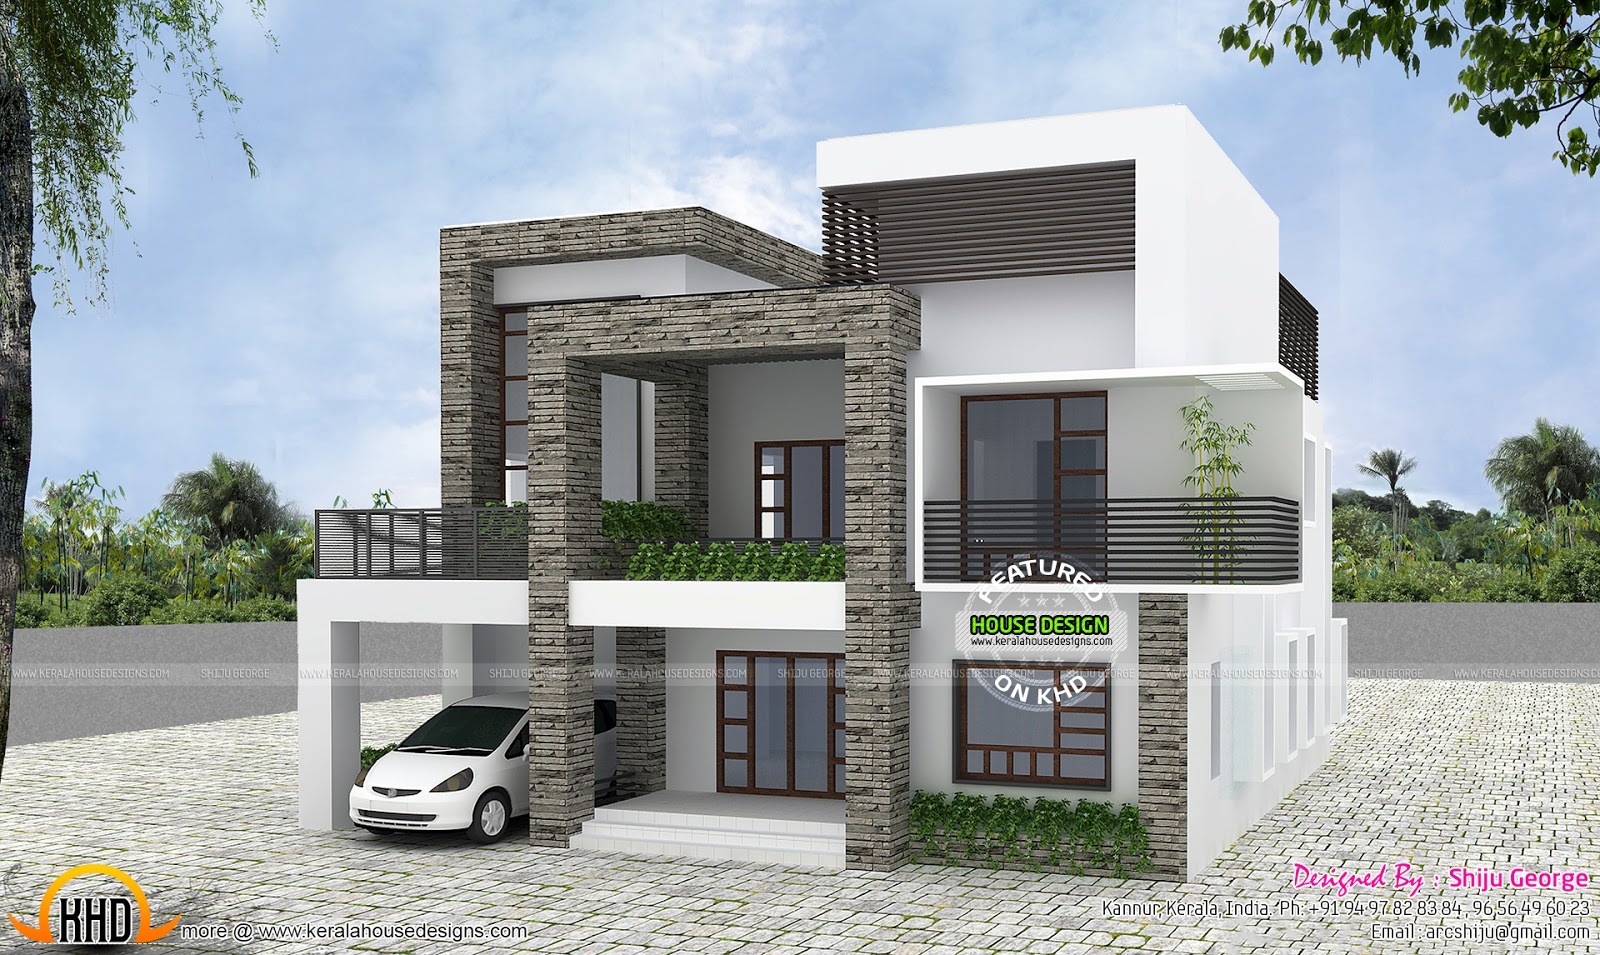 One house in 3 different styles with plan keralahousedesigns for Different floor plans for house